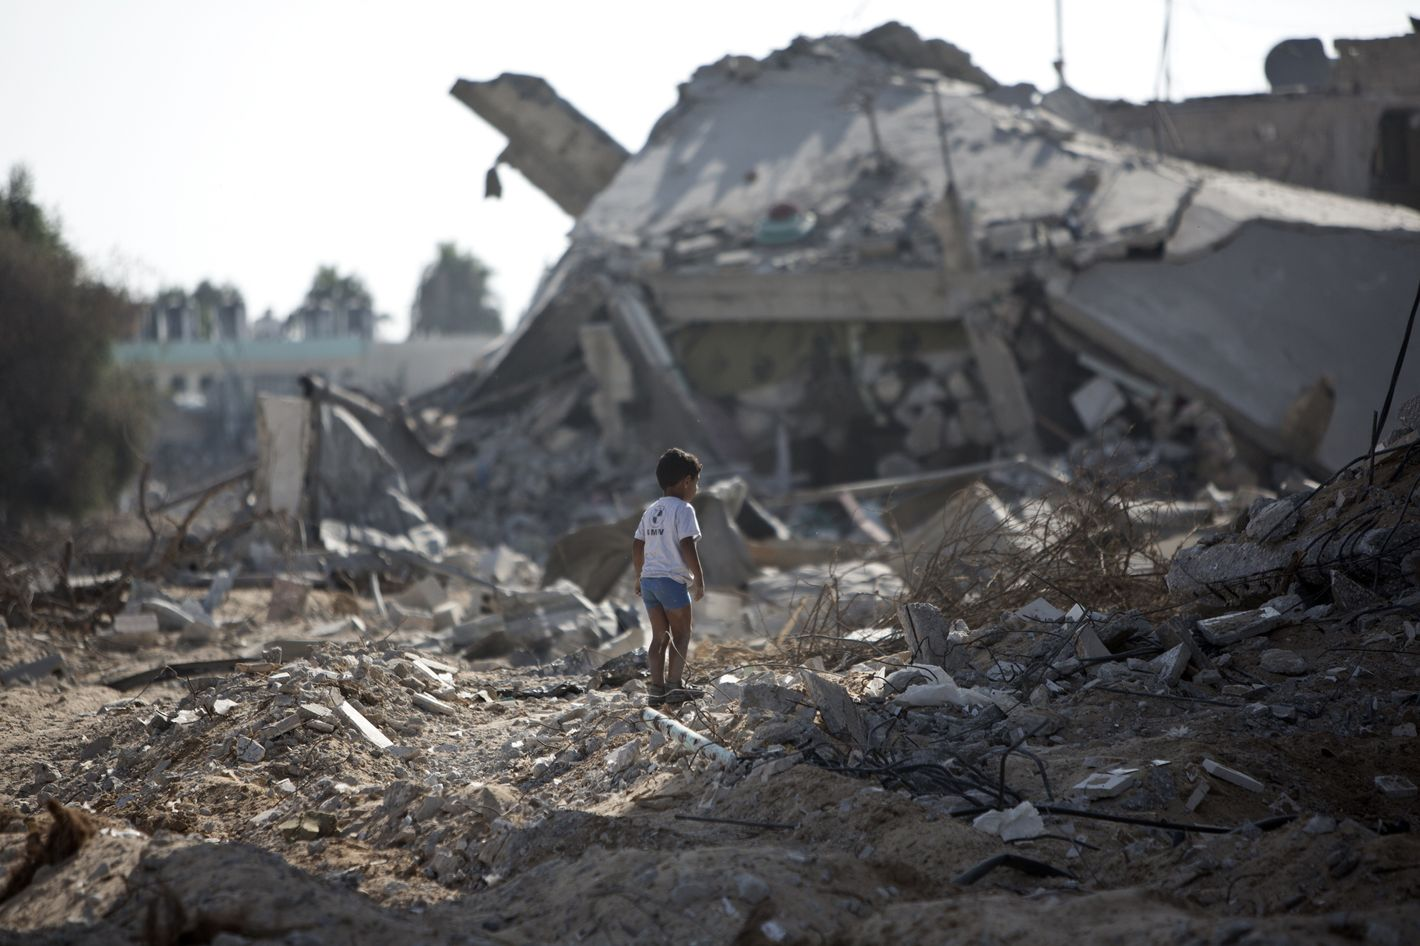 A Palestinian boy walks over debris as civilians who were displaced from their houses due to fighting between Israel's army and Hamas fighters return to check their homes in Gaza City's Shejaiya neighbourhood, on August 1, 2014. Israeli shelling killed eight people in Gaza today just hours into a three-day truce, medics said, as a diplomatic push for a more durable end to the bloodshed gained pace.  It gave a brief respite to residents of the battered strip, after 25 days of violence that killed 1,459 on the Palestinian side, mostly civilians, and 61 soldiers and three civilians on the Israeli side. AFP PHOTO / MAHMUD HAMS        (Photo credit should read MAHMUD HAMS/AFP/Getty Images)